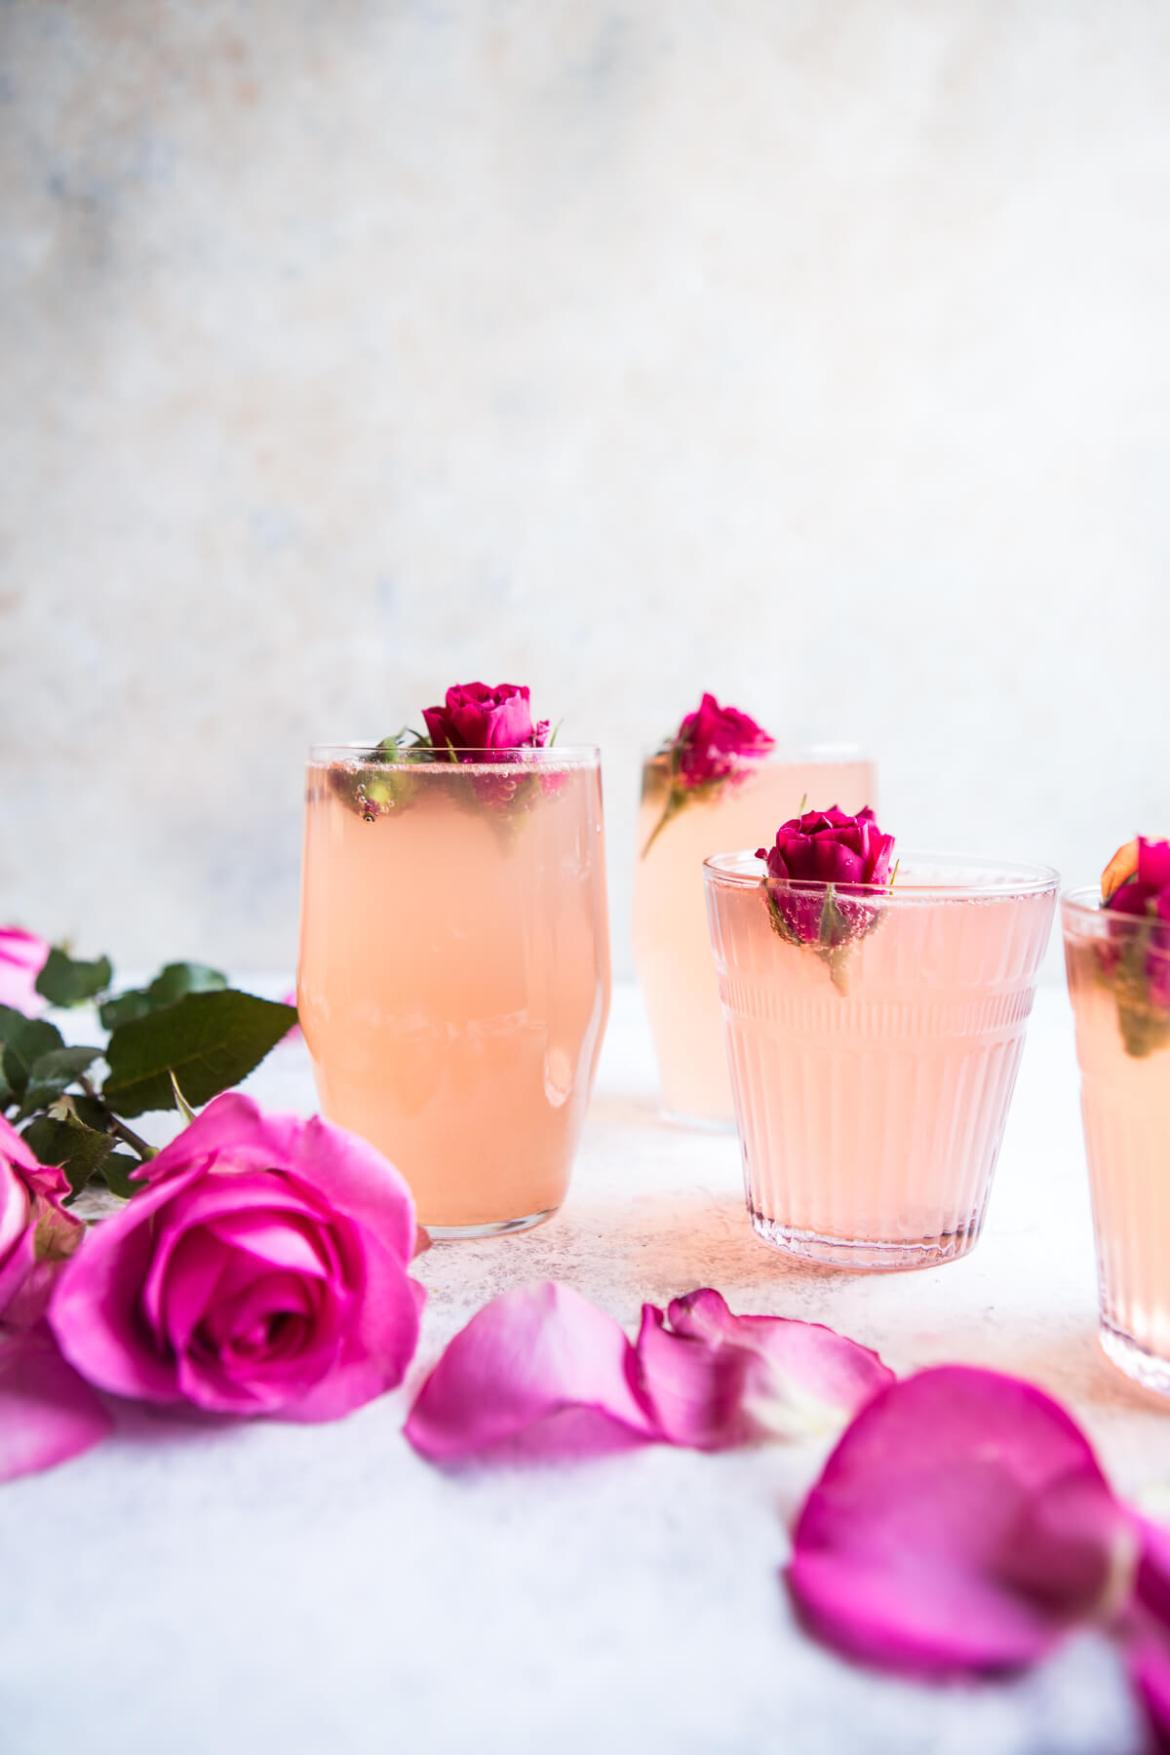 Rose-Lemon-Spriter-galentines-valentines-recipe